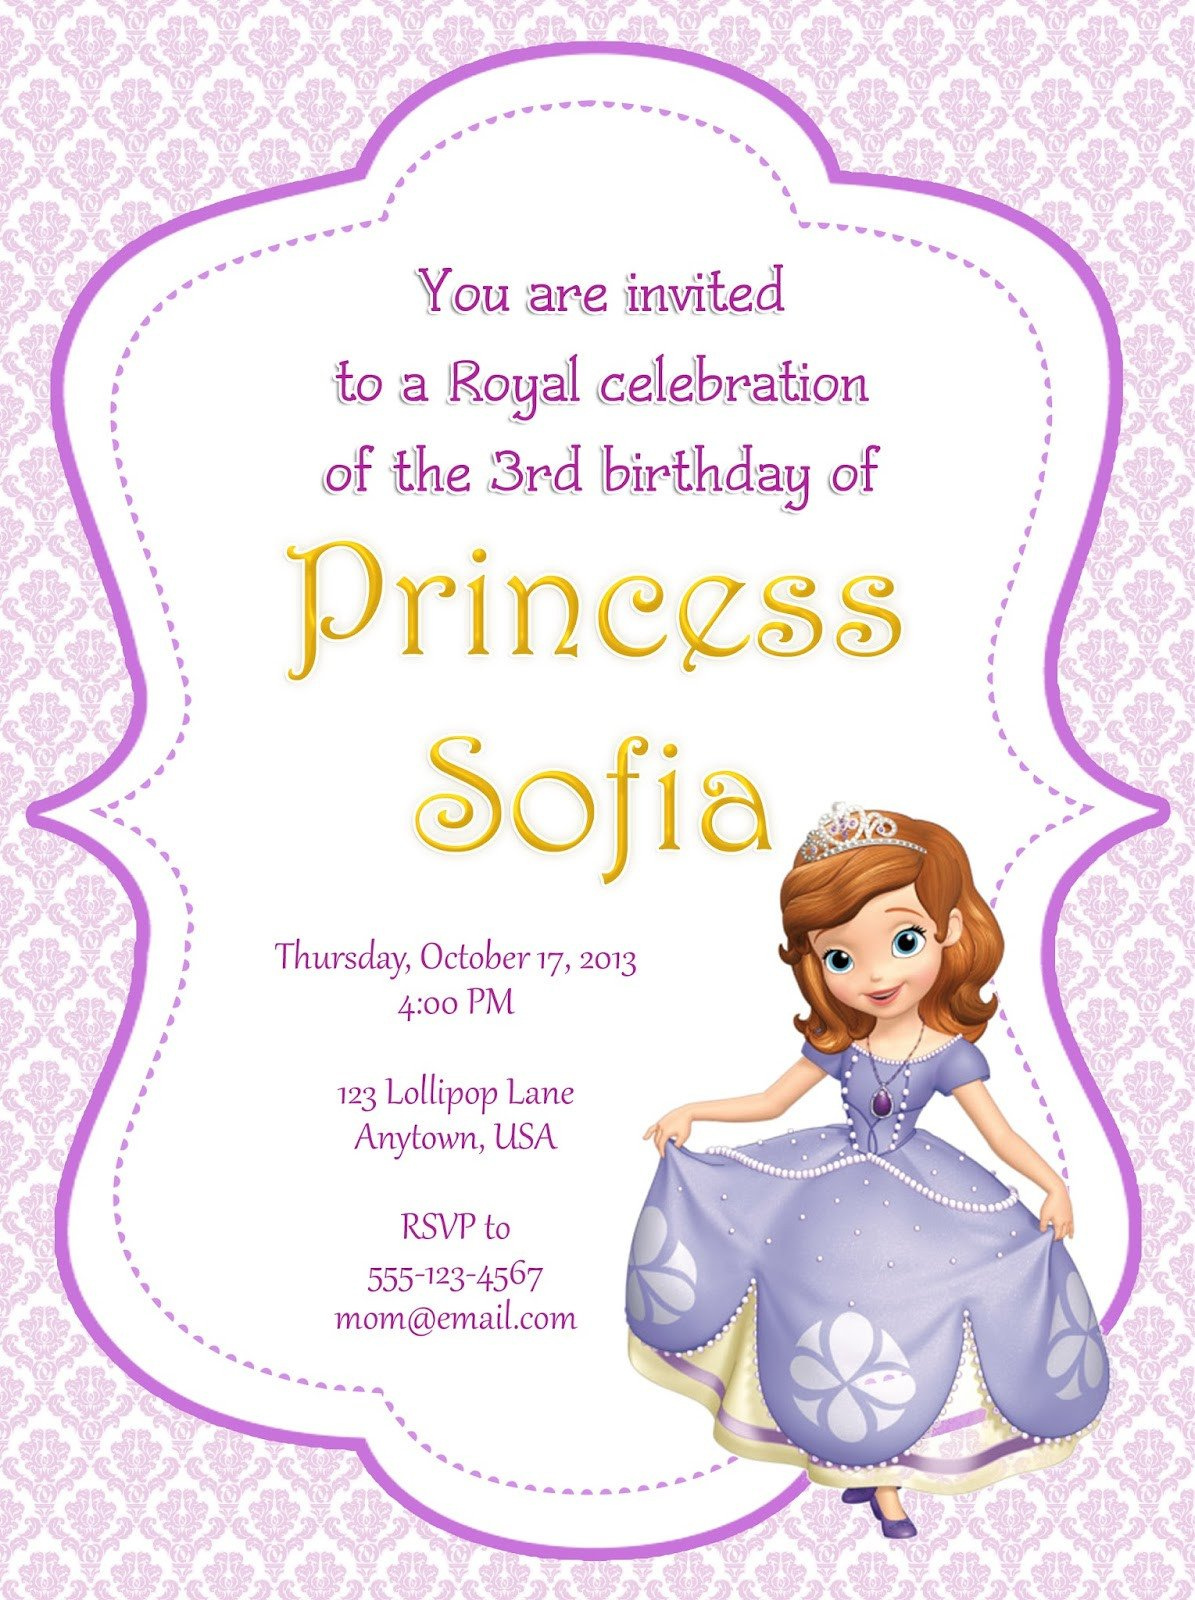 Sofia the First Invitation Templates I Make I August 2013